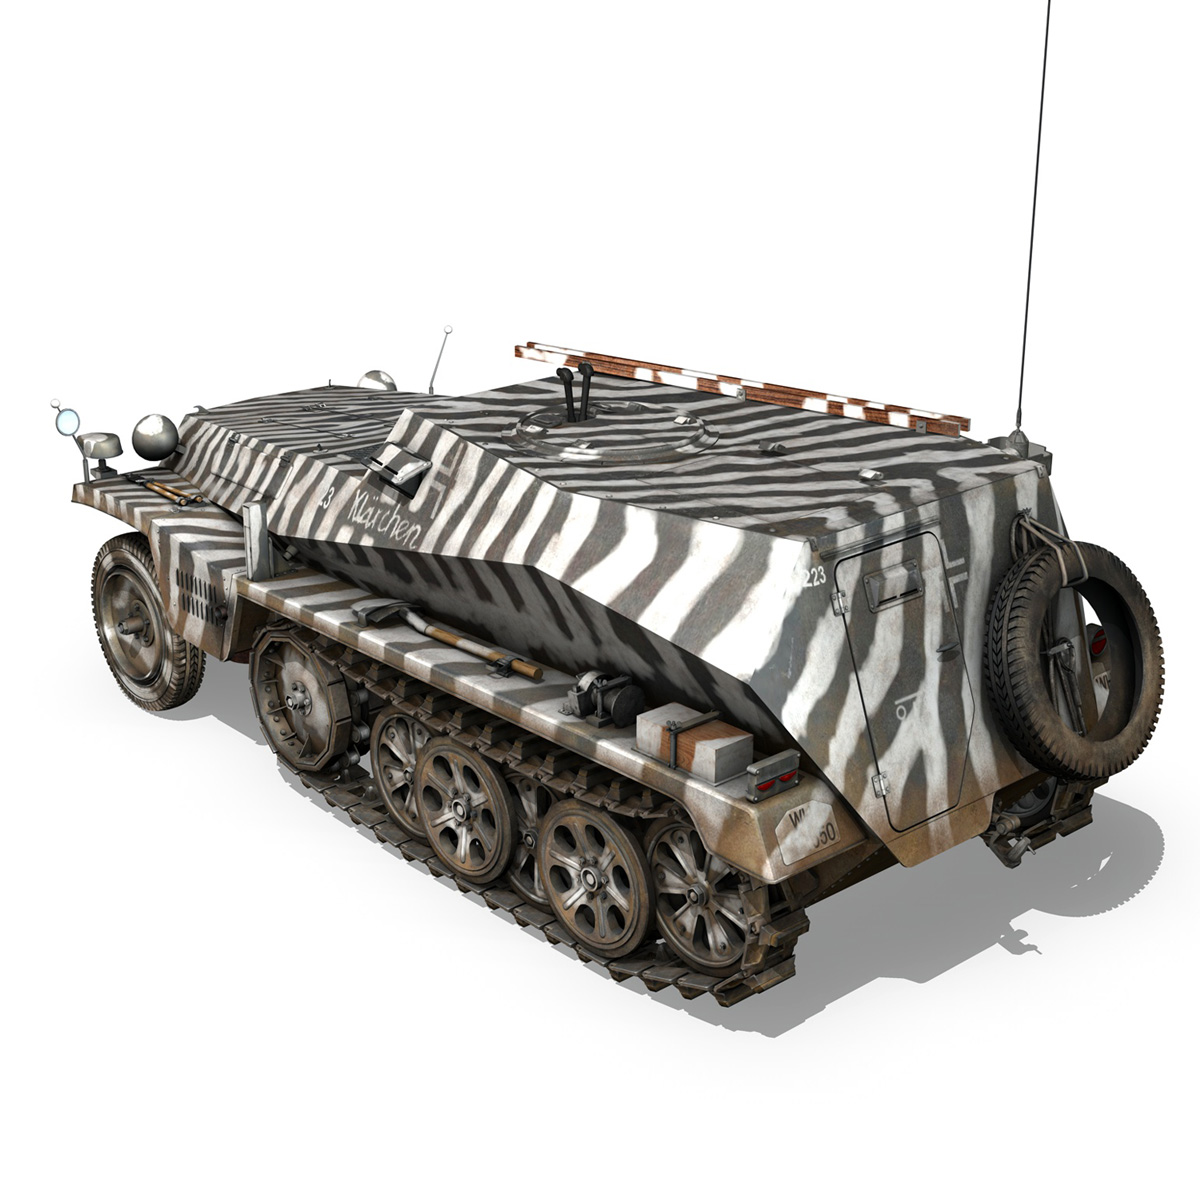 sdkfz.253 – beob.pz.wg. – observation vehicle 3d model 3ds fbx c4d lwo obj 269030